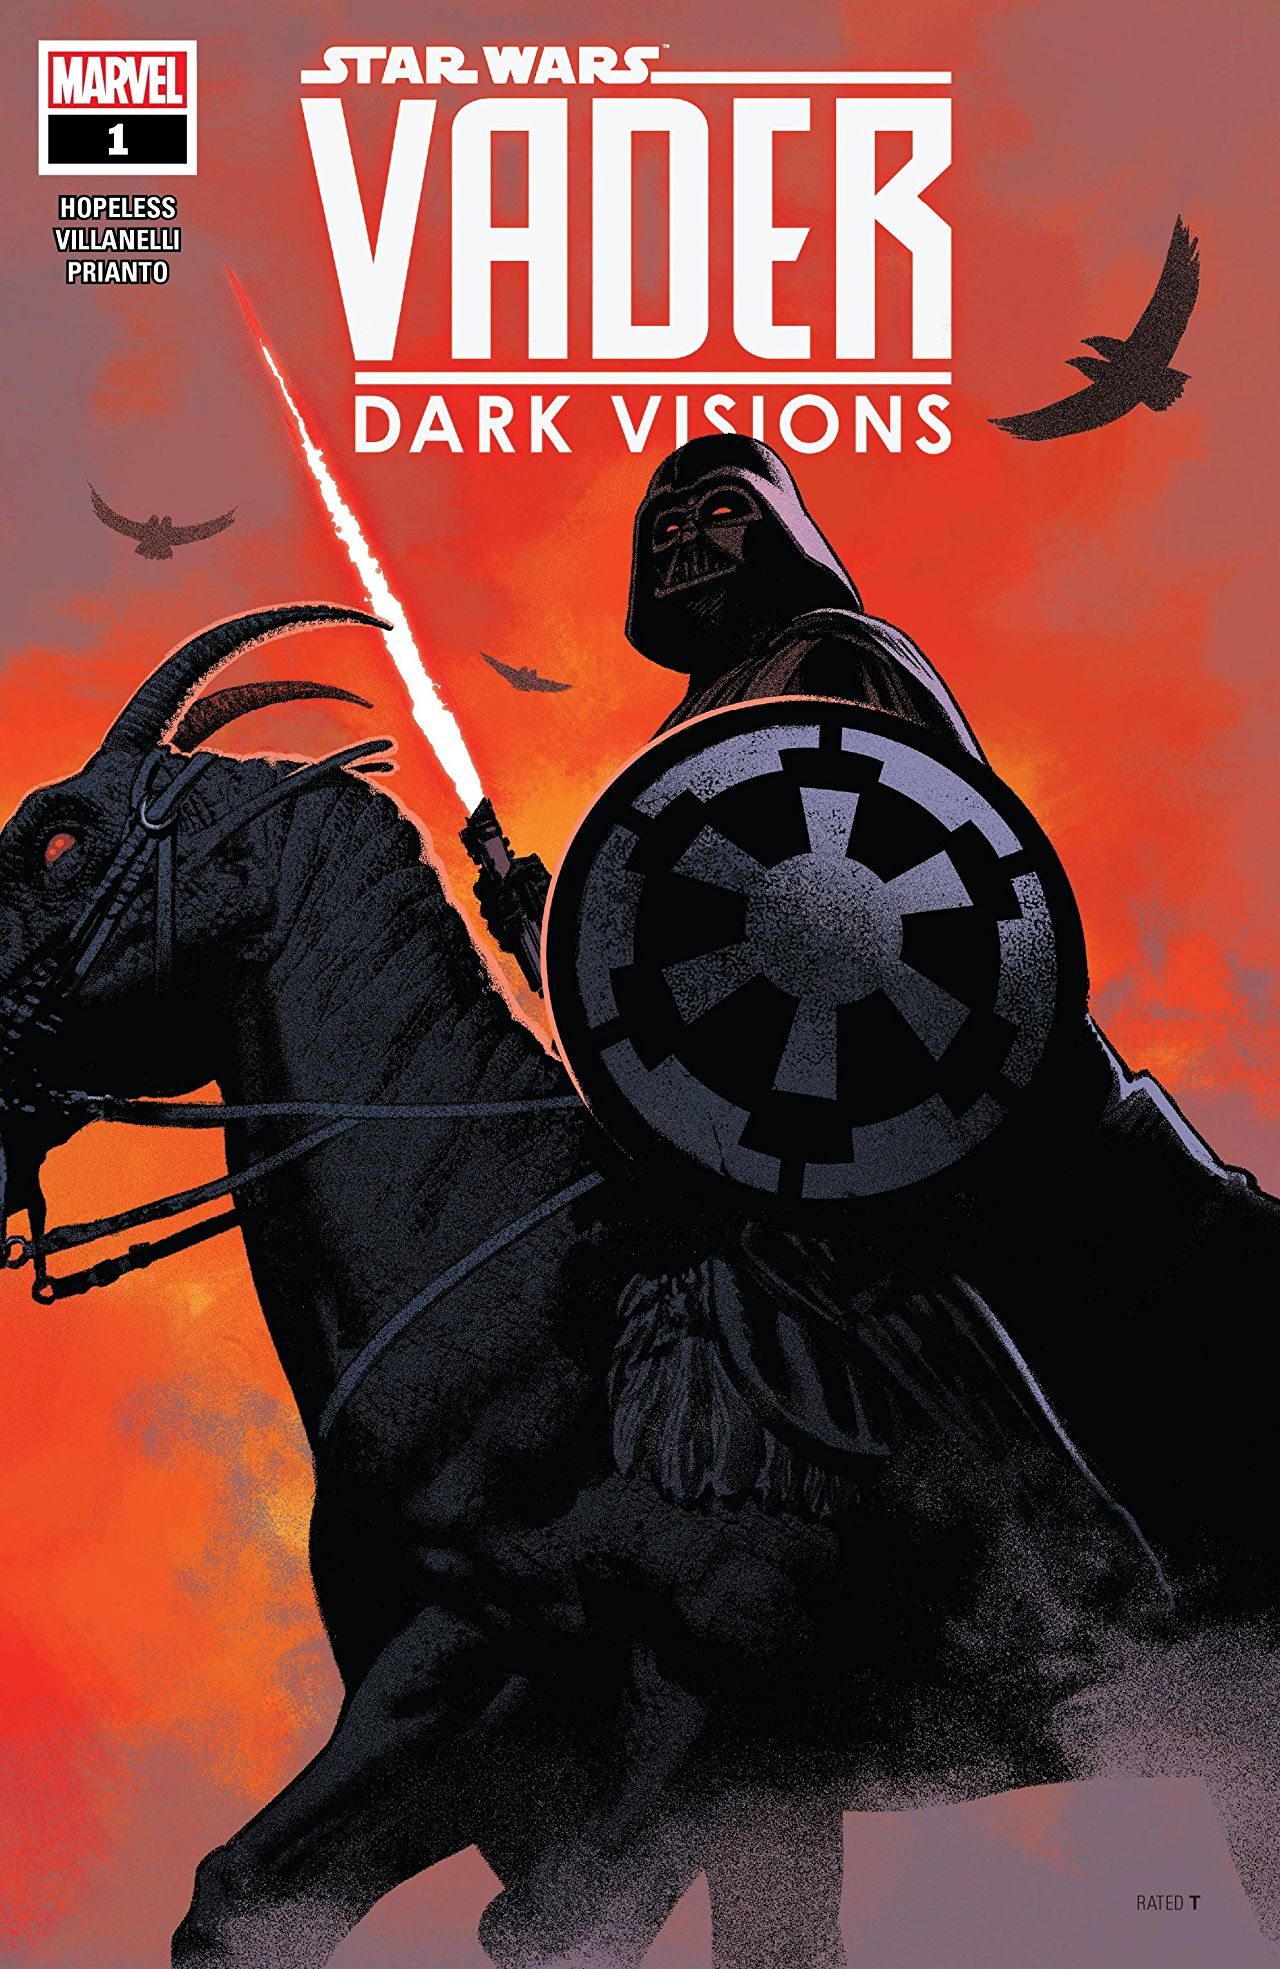 Star Wars: Vader - Dark Visions Vol 1 1